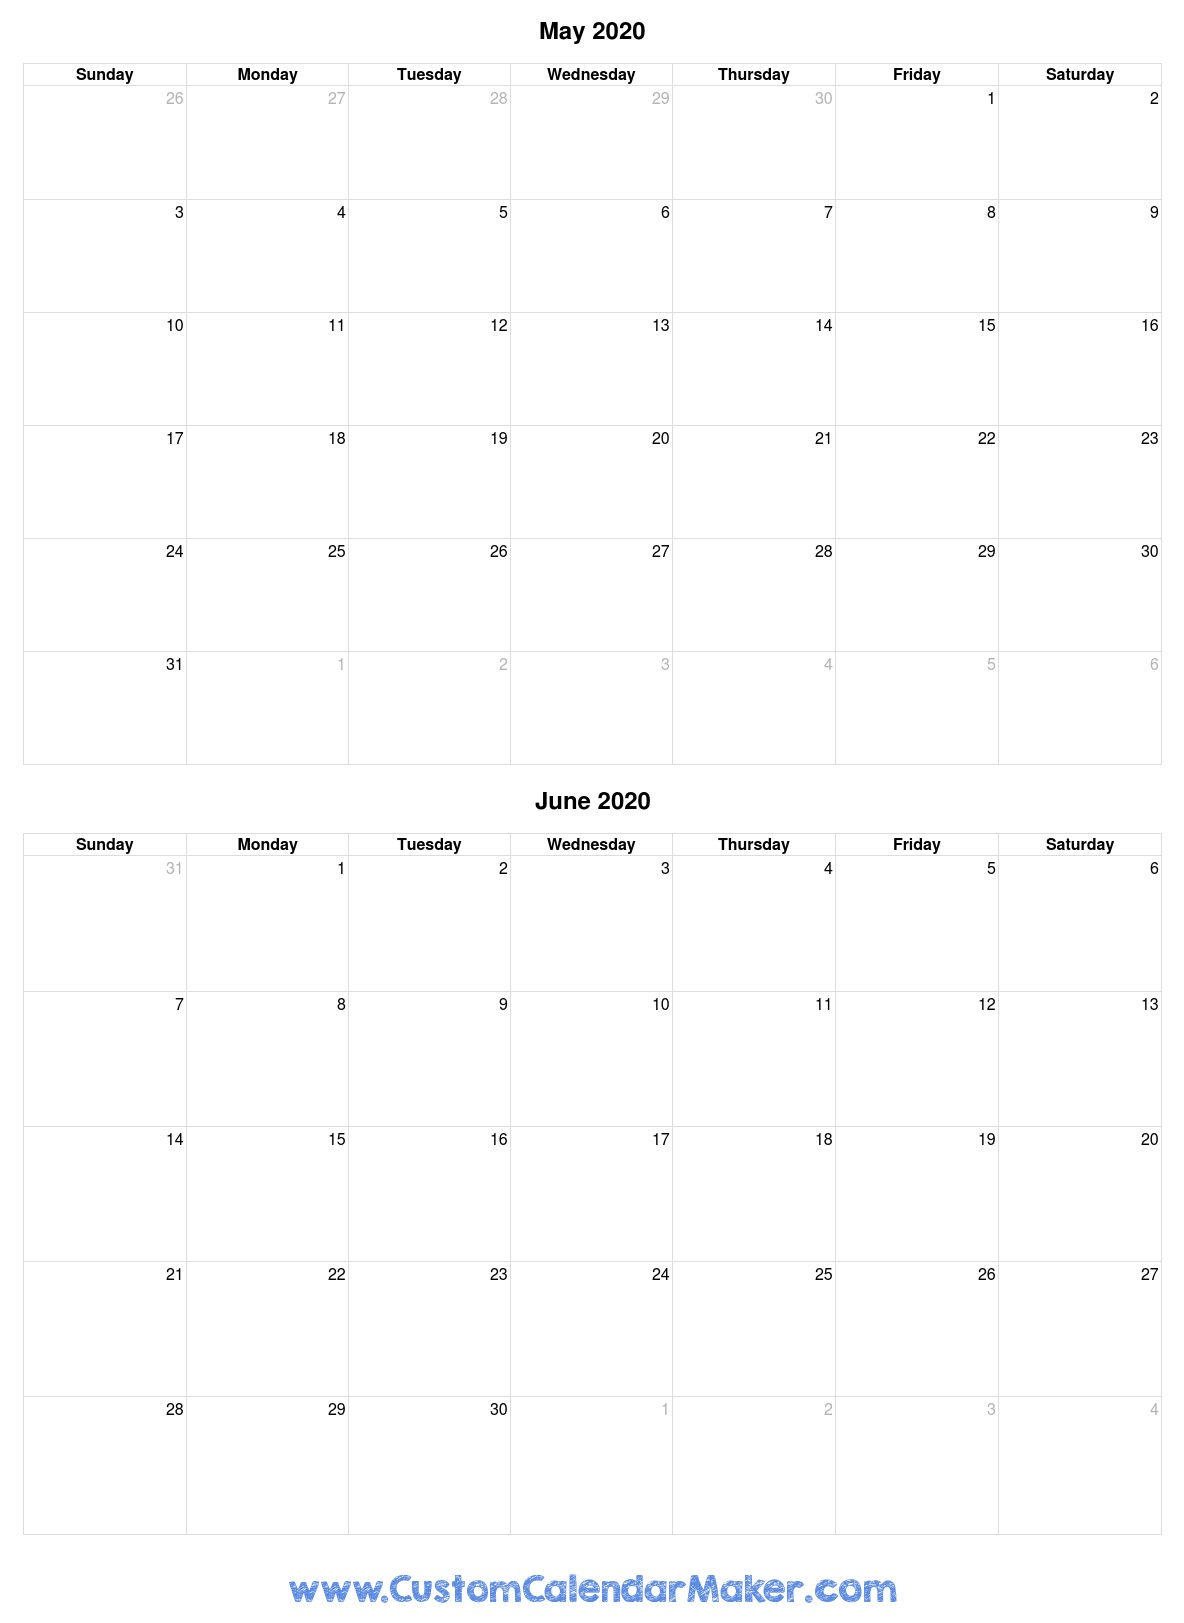 Free Printable Calendars, Blank Pdf Templates To Print A for Free Fill In Calendars 2020